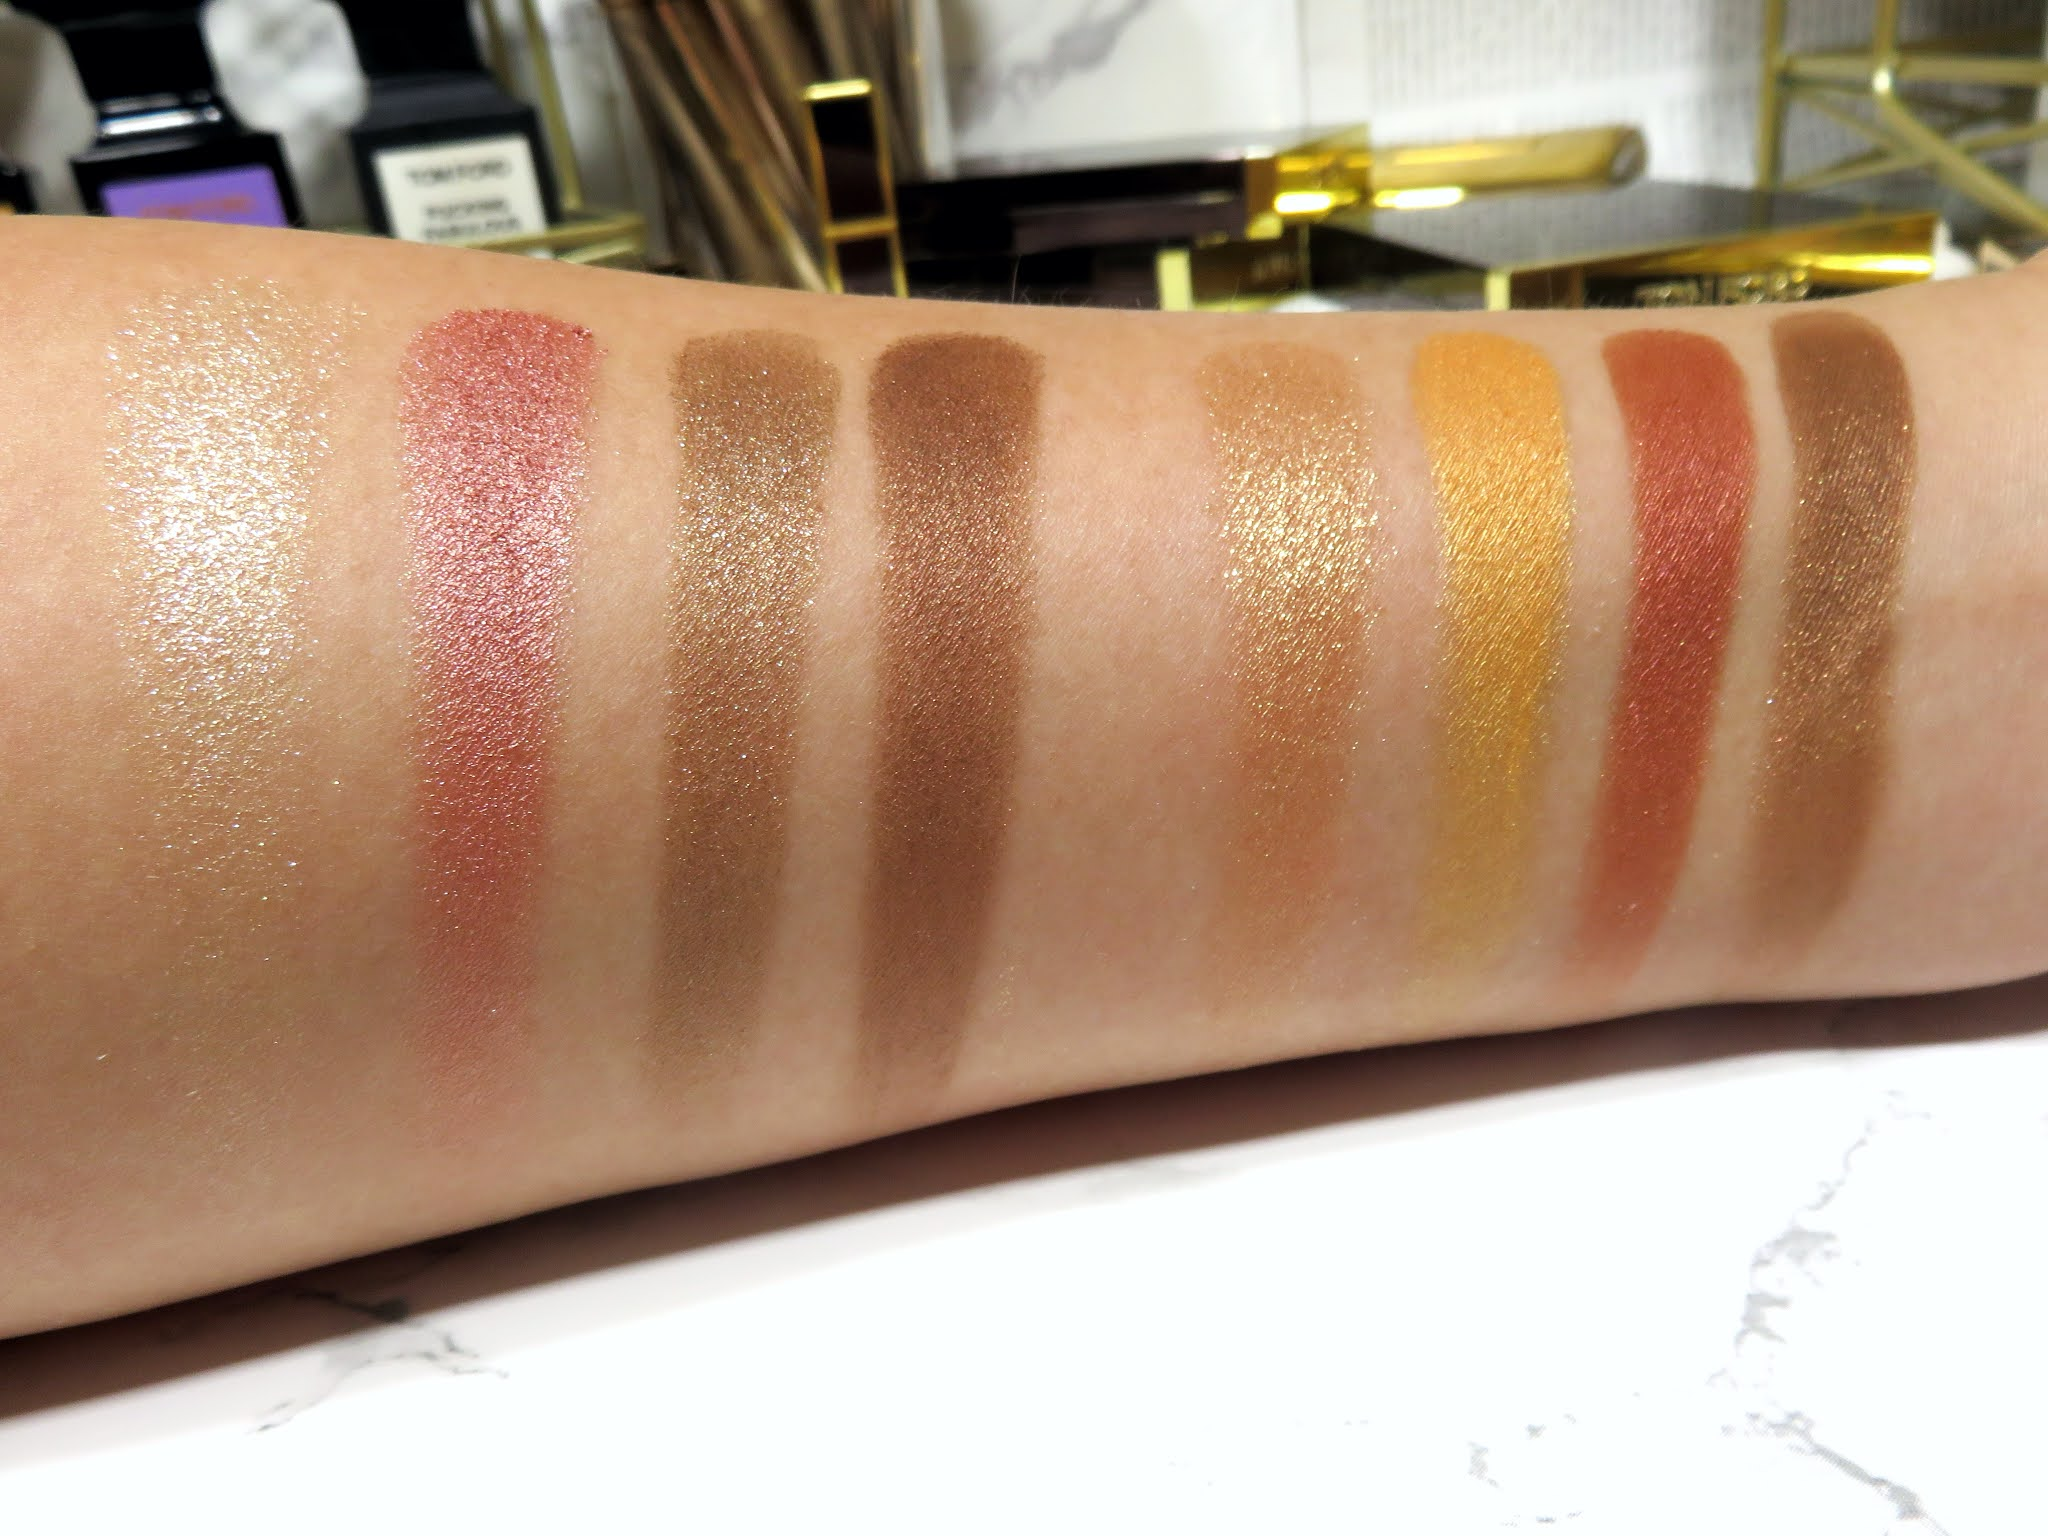 Tom Ford Visionaire Eye Color Quad Review and Swatches